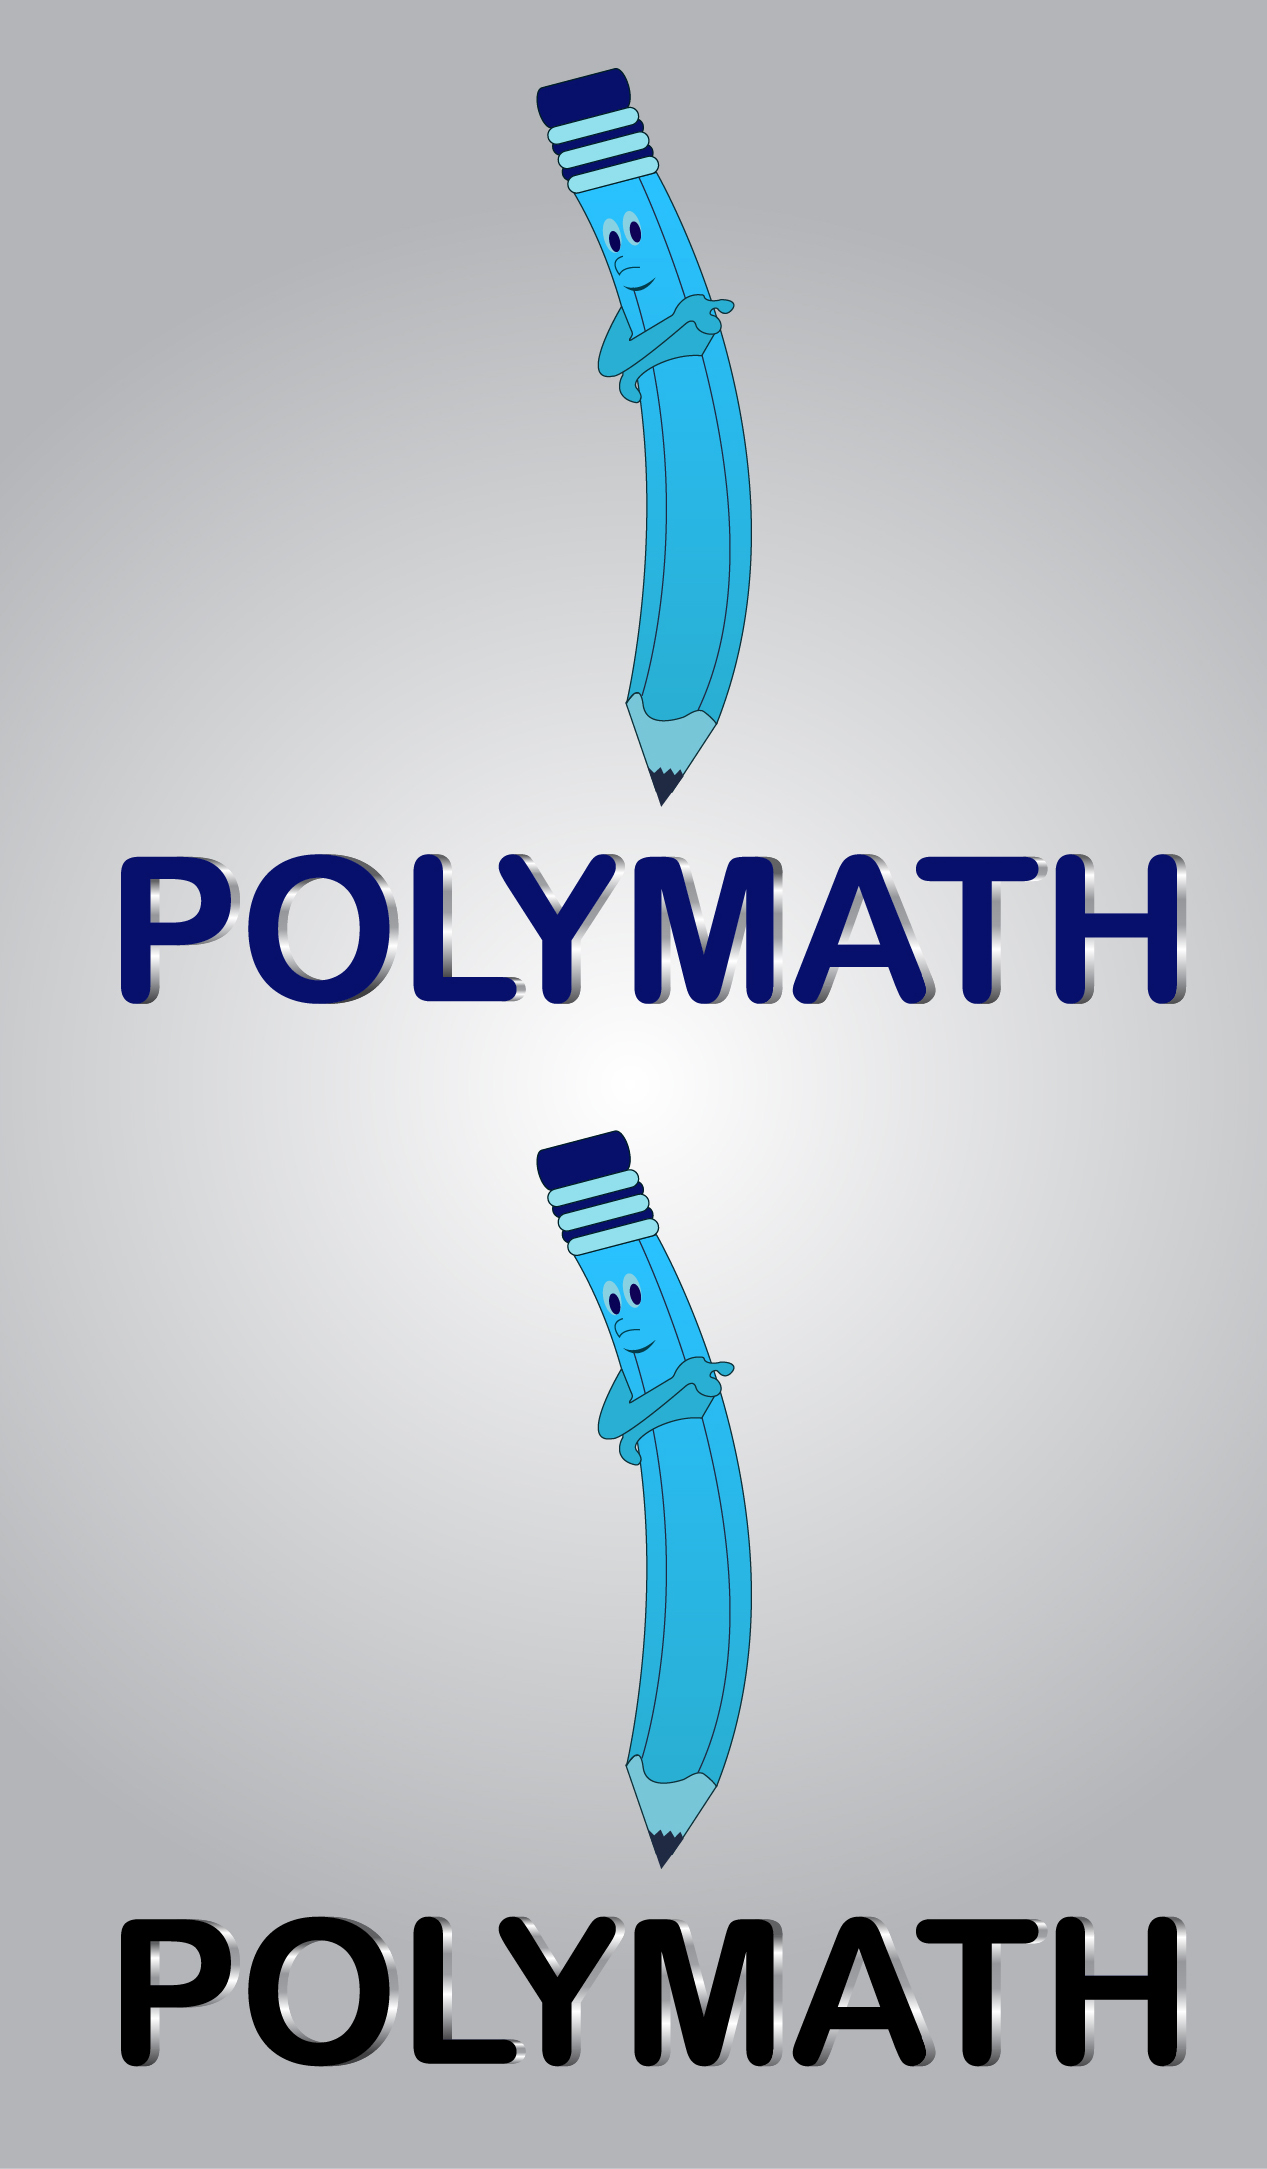 Logo Design by mediaproductionart - Entry No. 19 in the Logo Design Contest Imaginative Logo Design for Polymath.